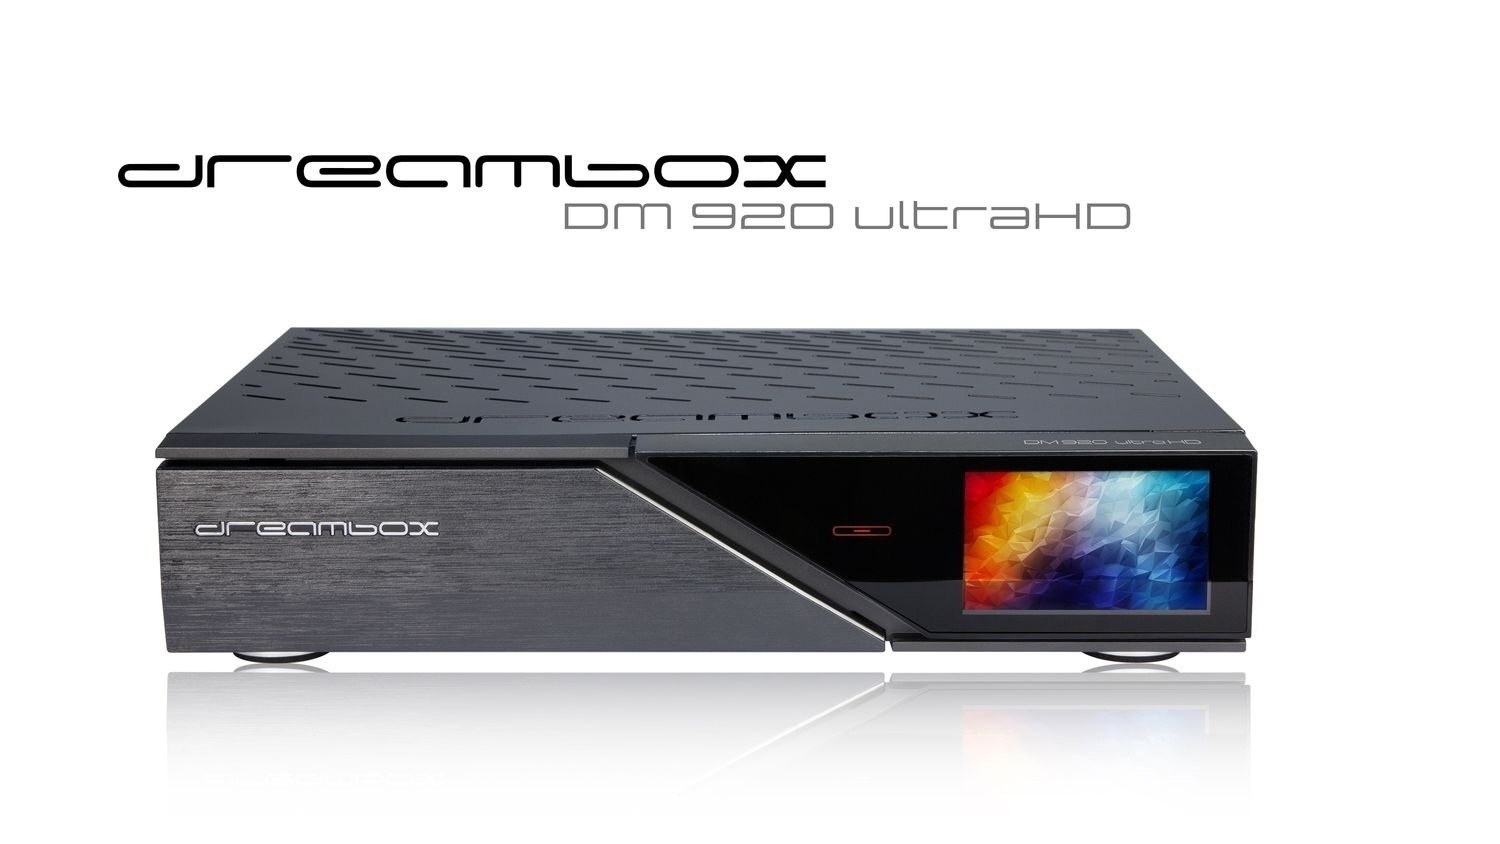 Dreambox DM900 UltraHD